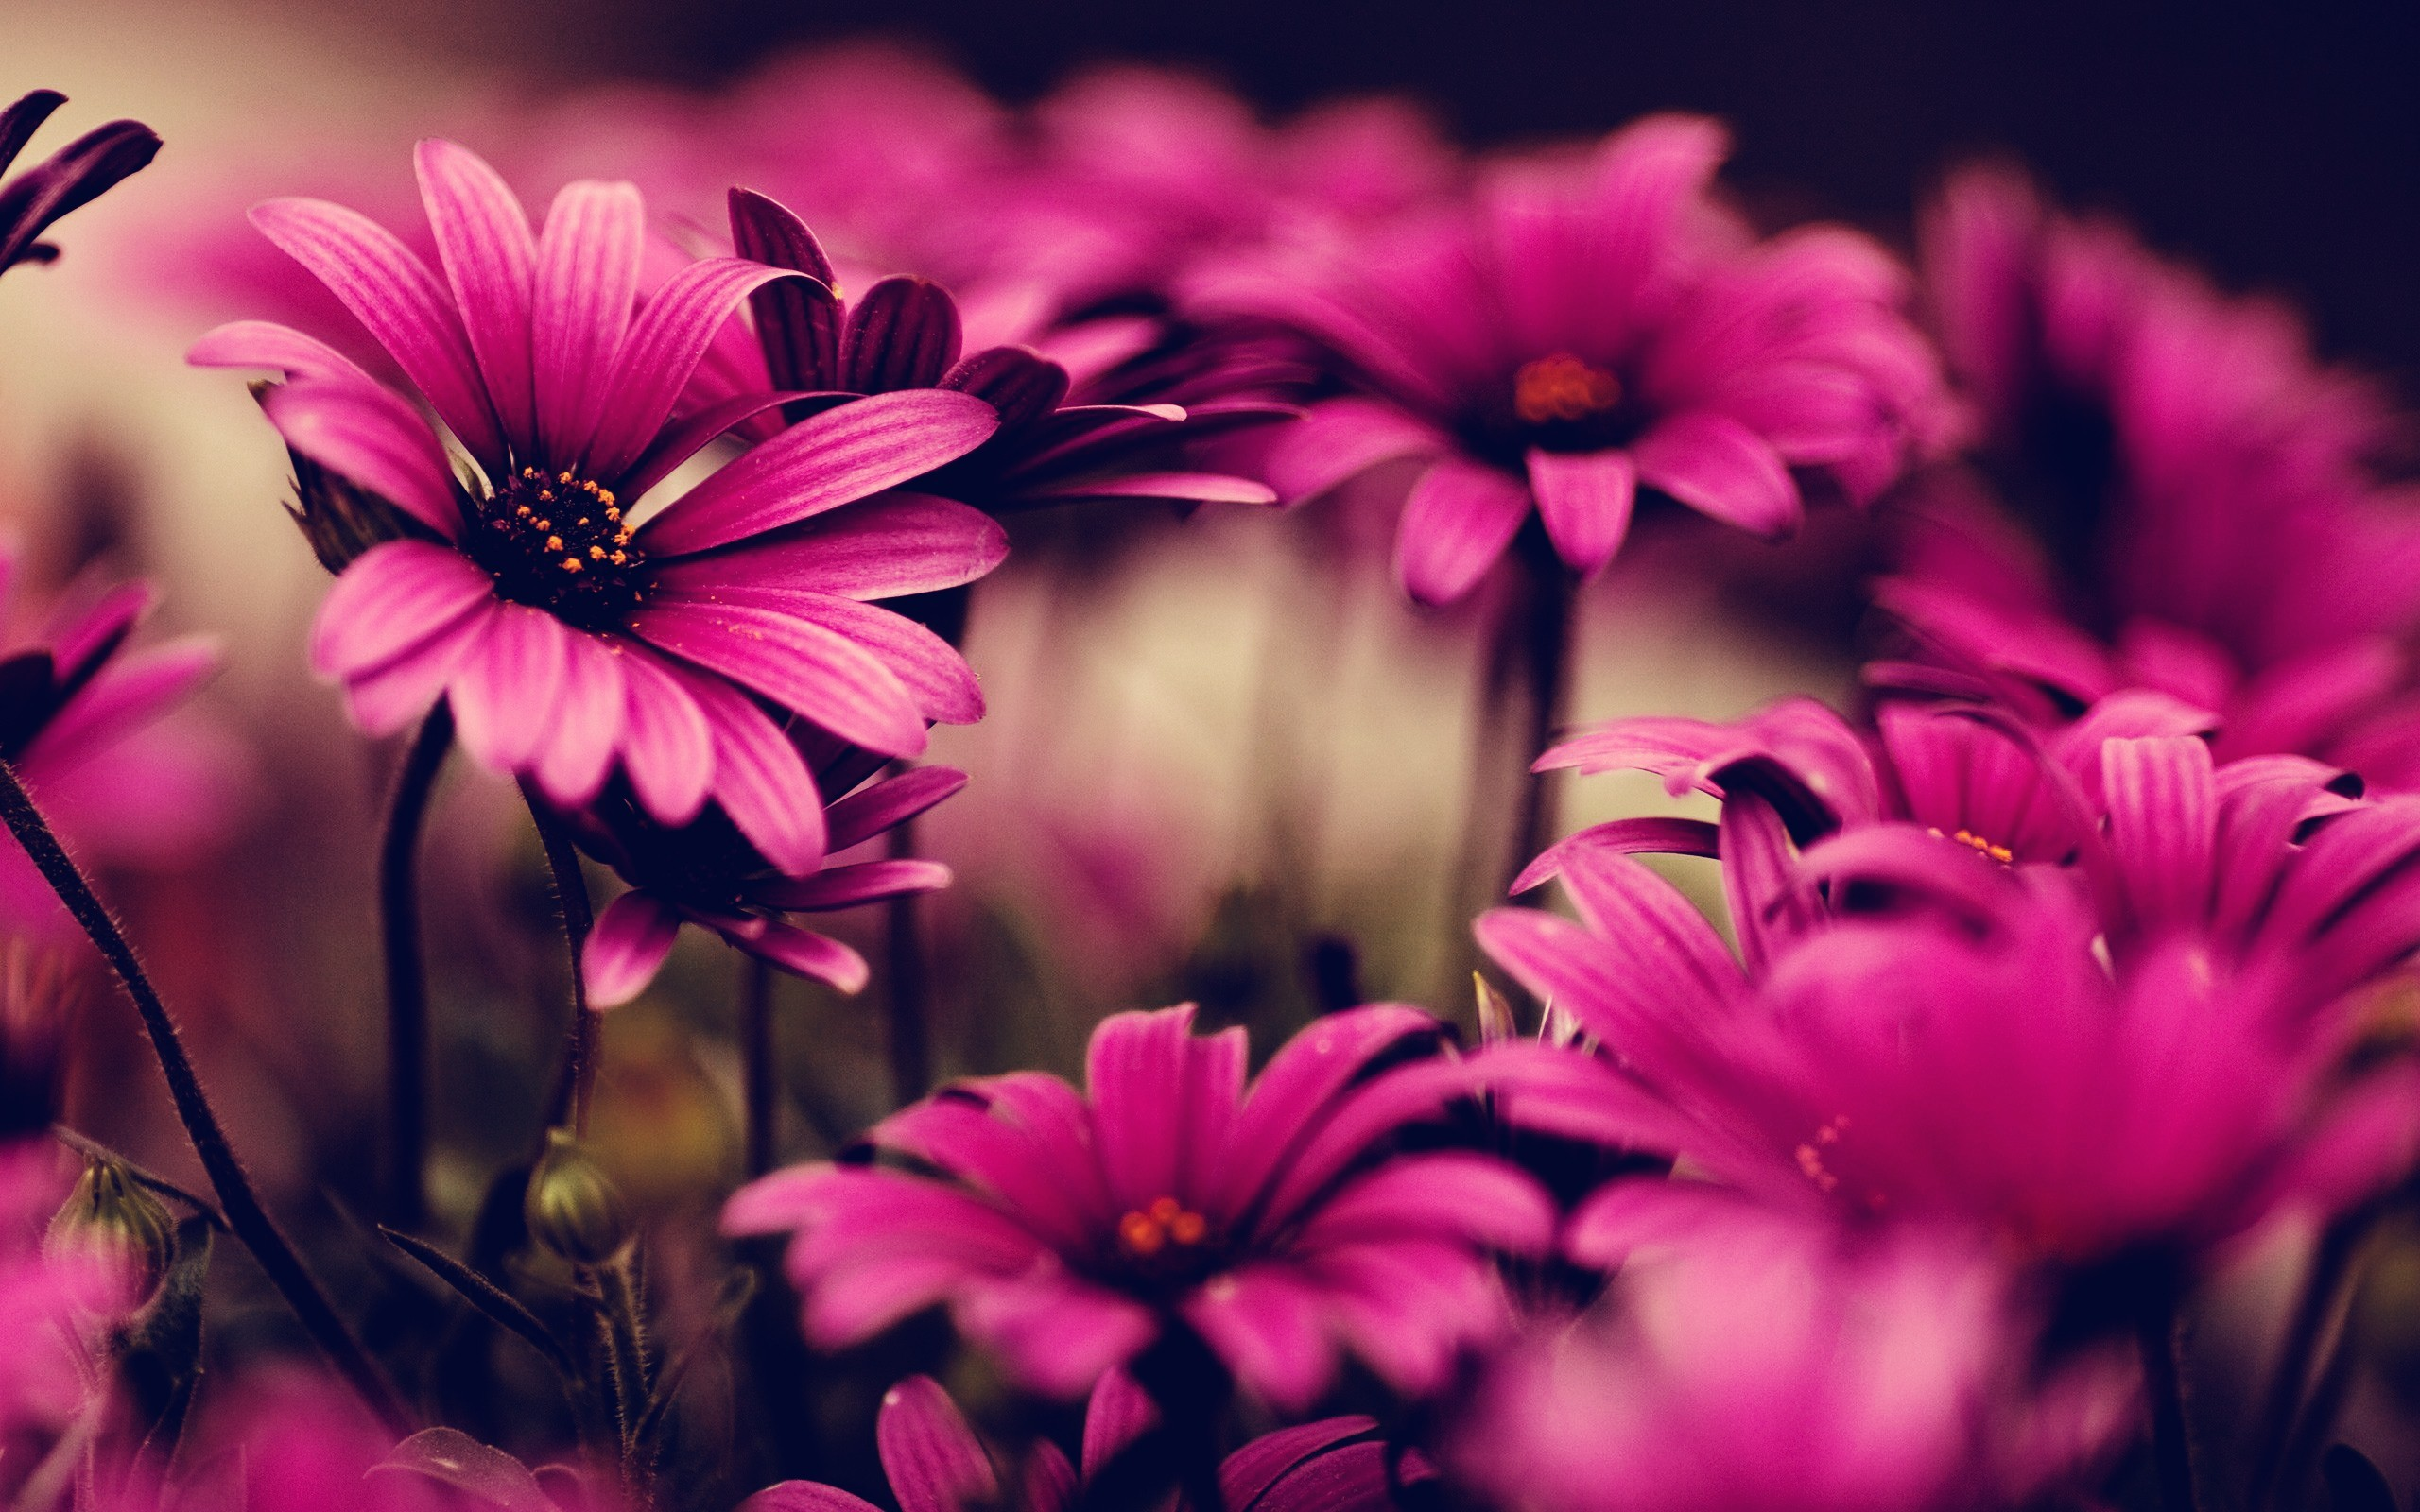 40 BEAUTIFUL FLOWER WALLPAPERS FREE TO DOWNLOAD | Pinterest | Flower  backgrounds, Flower and Resolutions